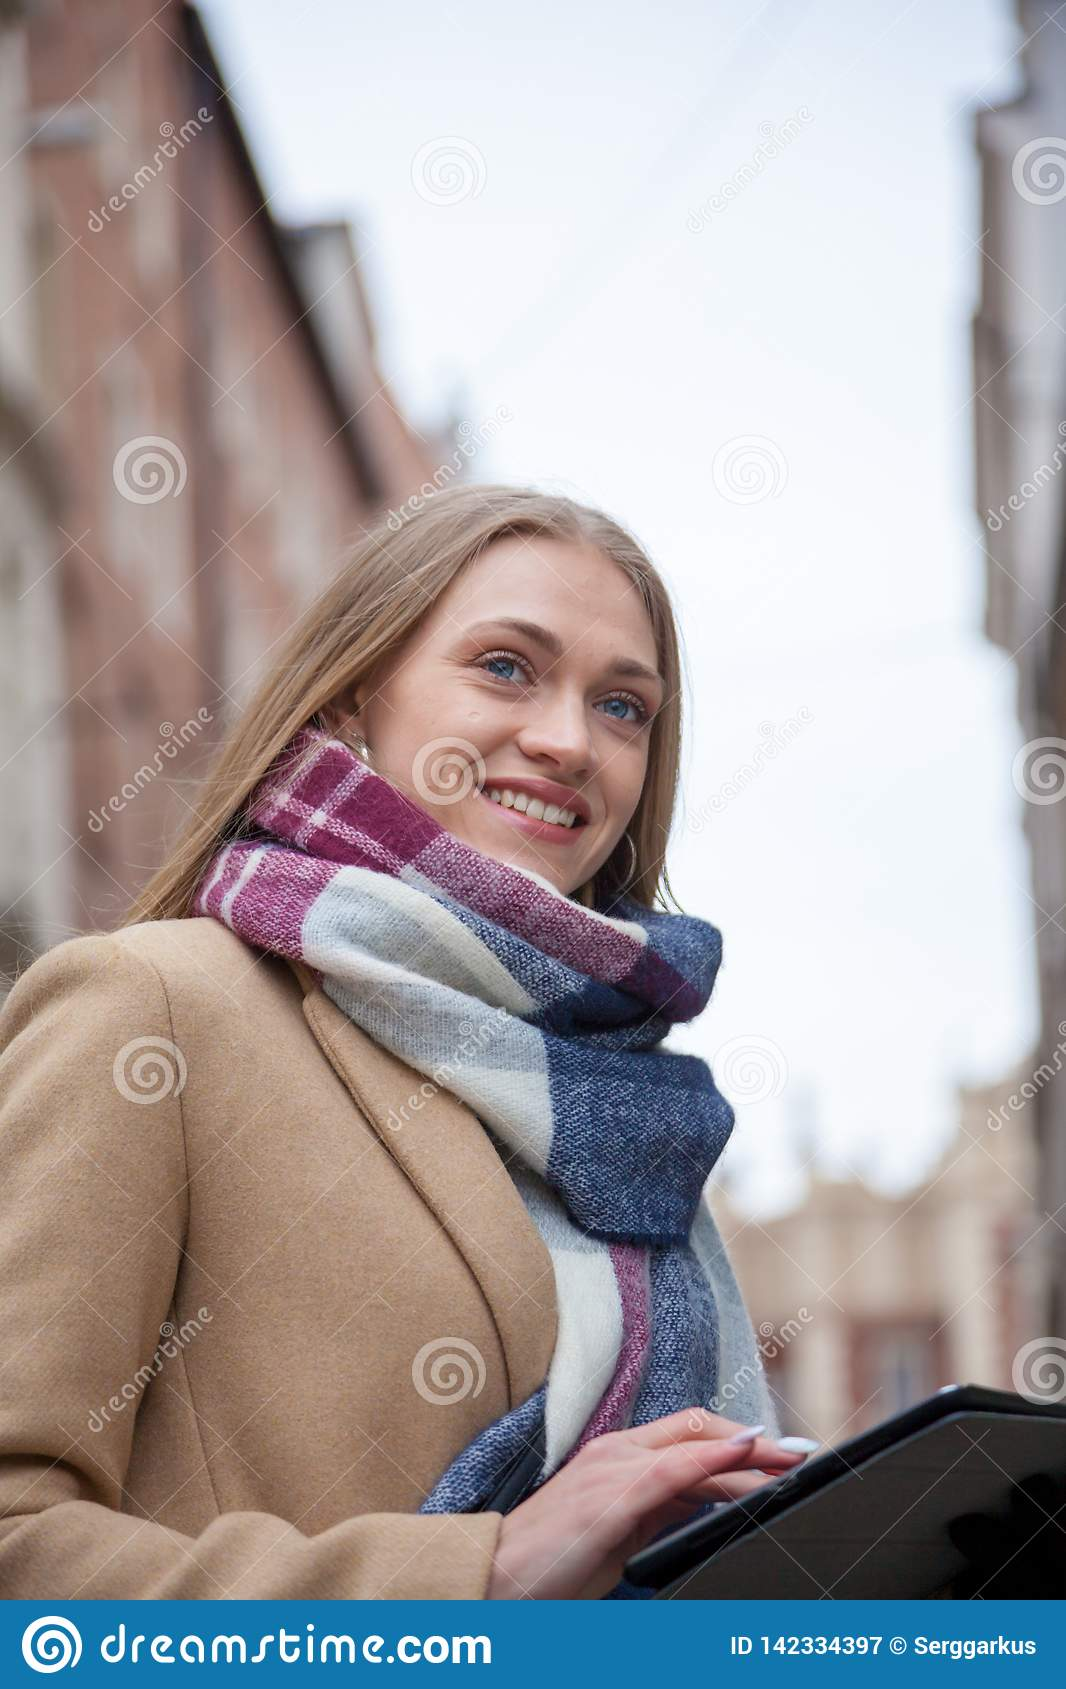 Smiling blonde beautiful woman holding tablet on city street.